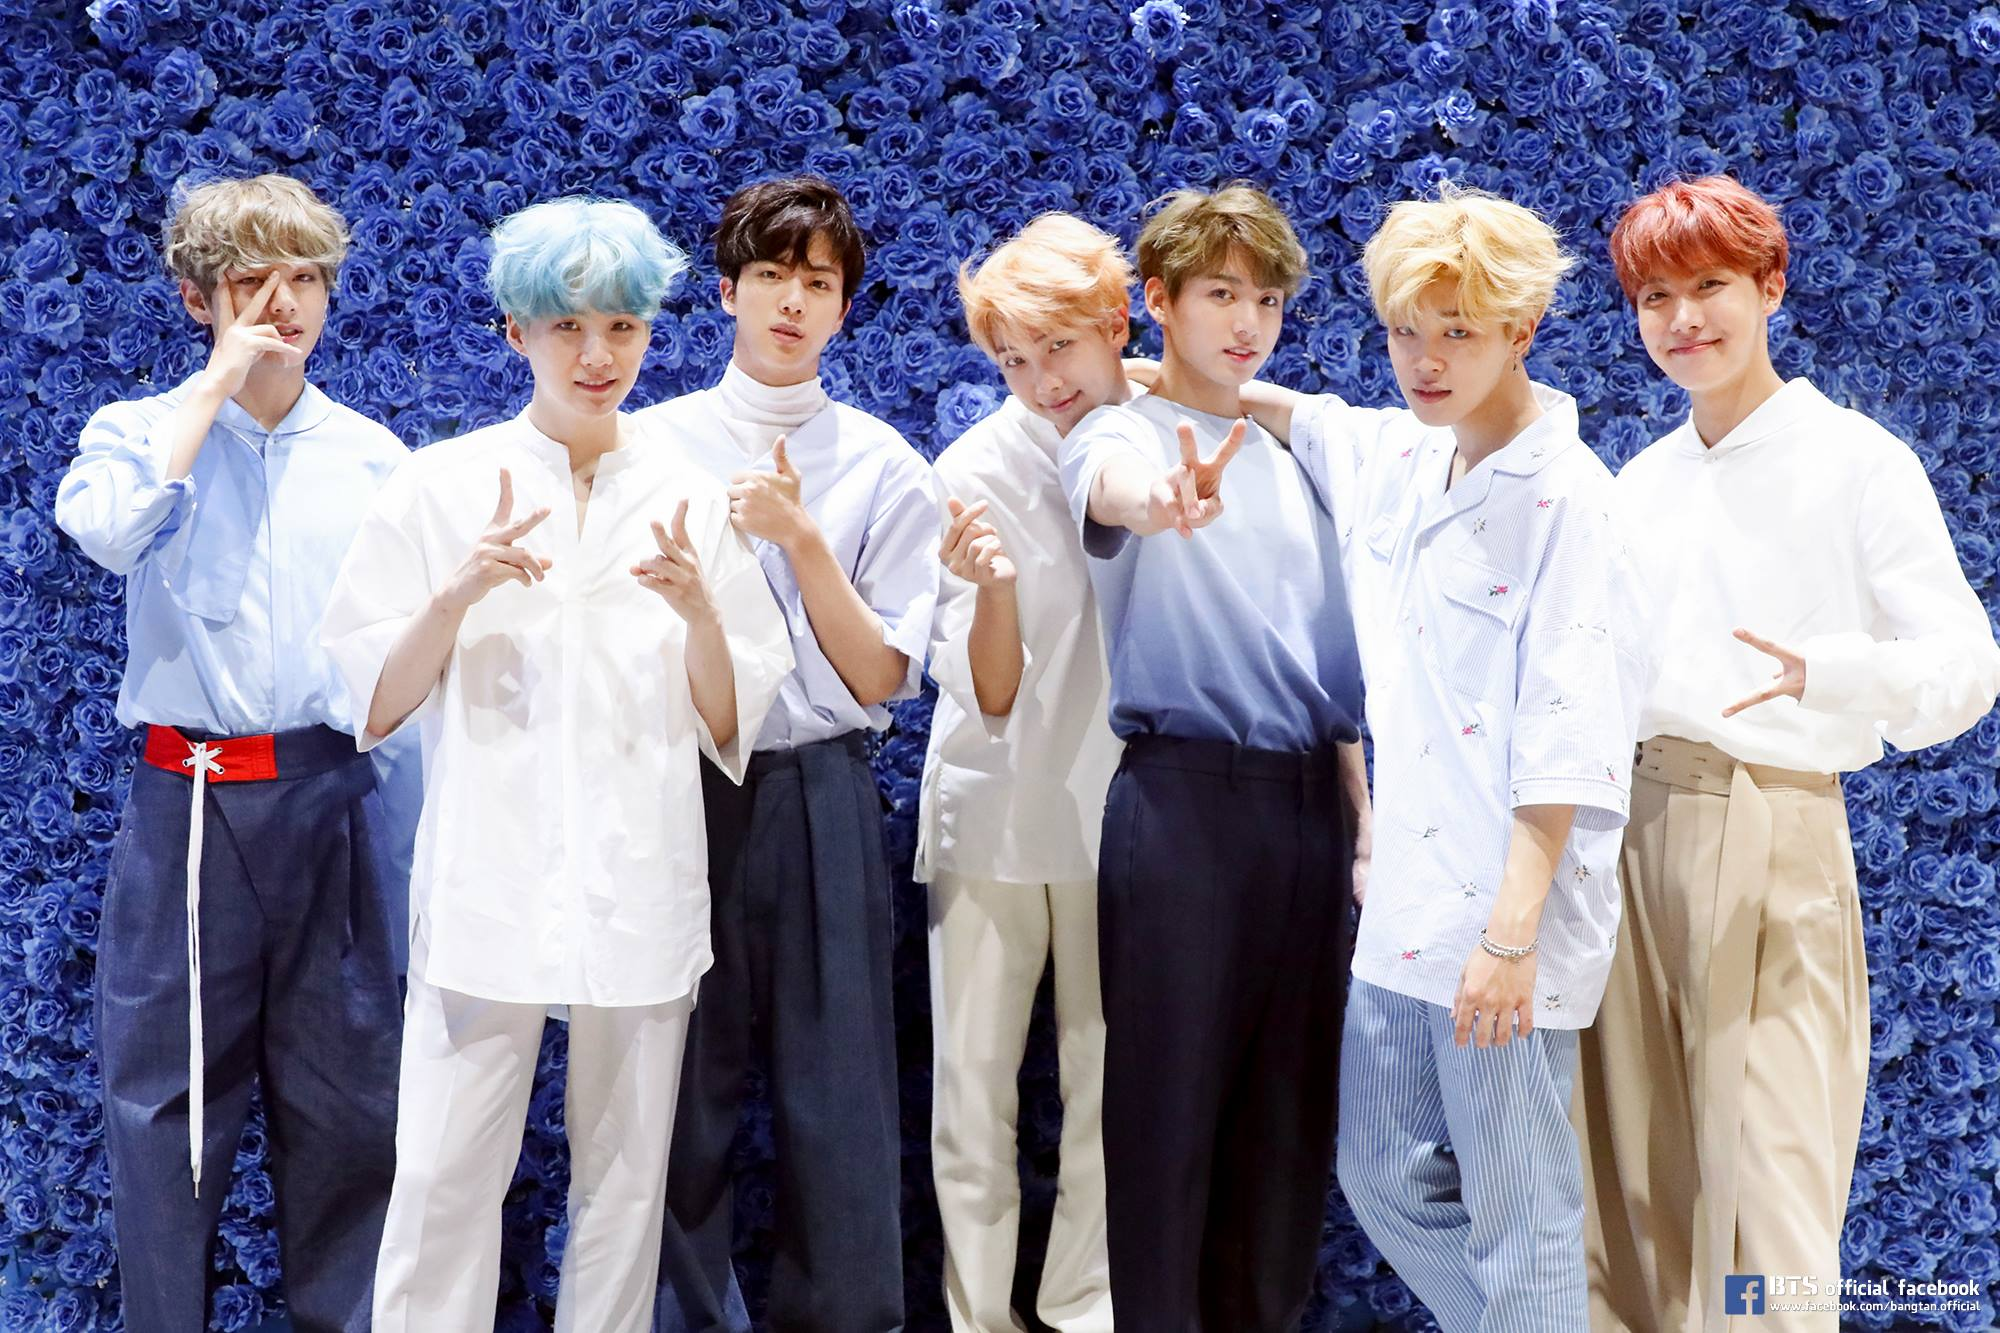 Bts Released 25 Special Hd Photos For 2018 Bts Festa